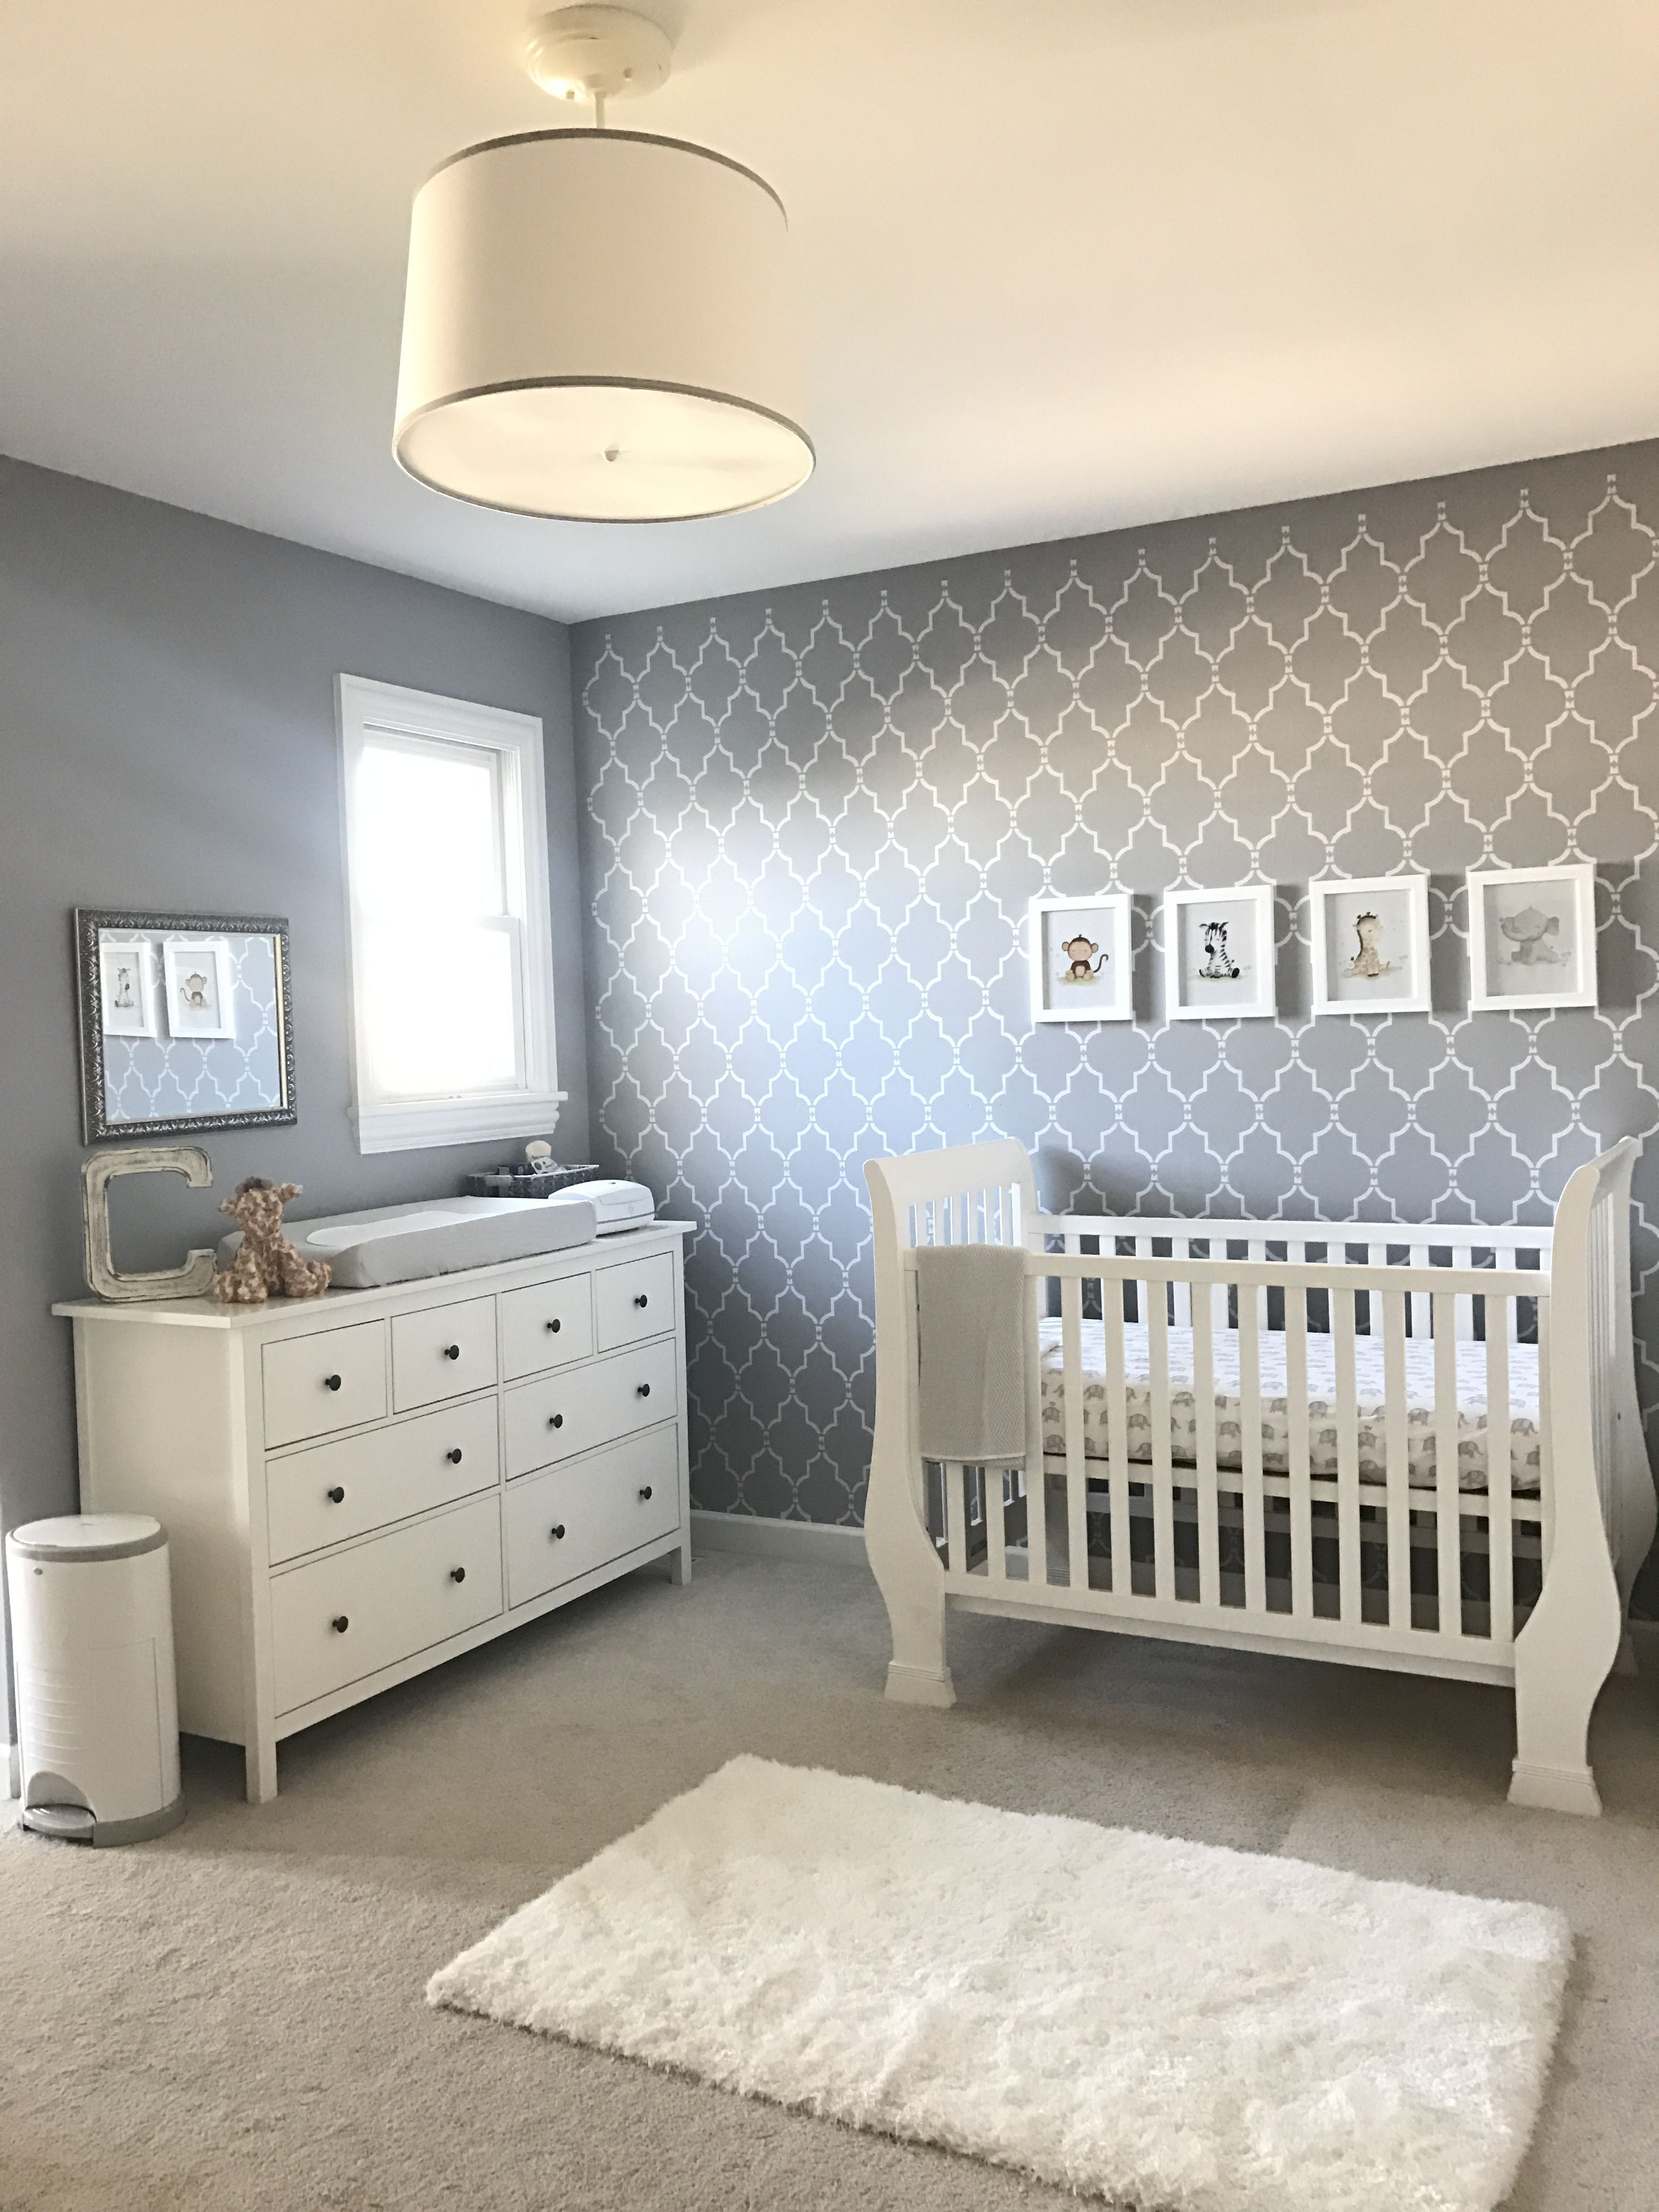 You are never too young to live in style. Shop Kids Furniture & Decor at Kathy Kuo Home. nursery